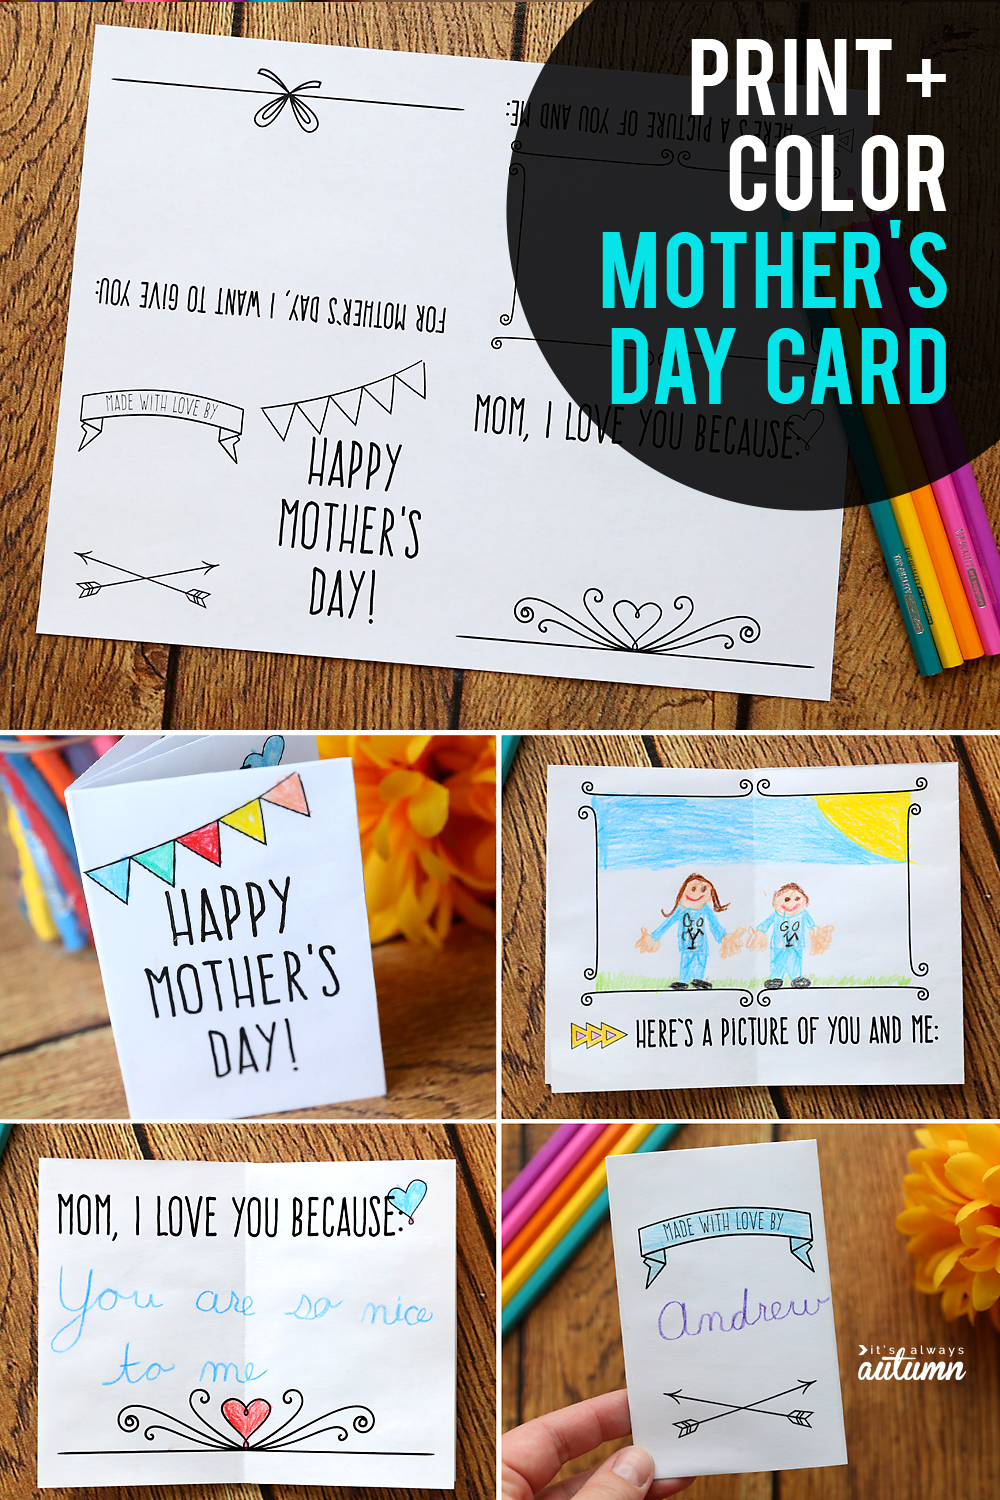 Cute printable Mother's Day card that kids can color for Mom! It prints on one sheet of paper and folds up into a mini book.